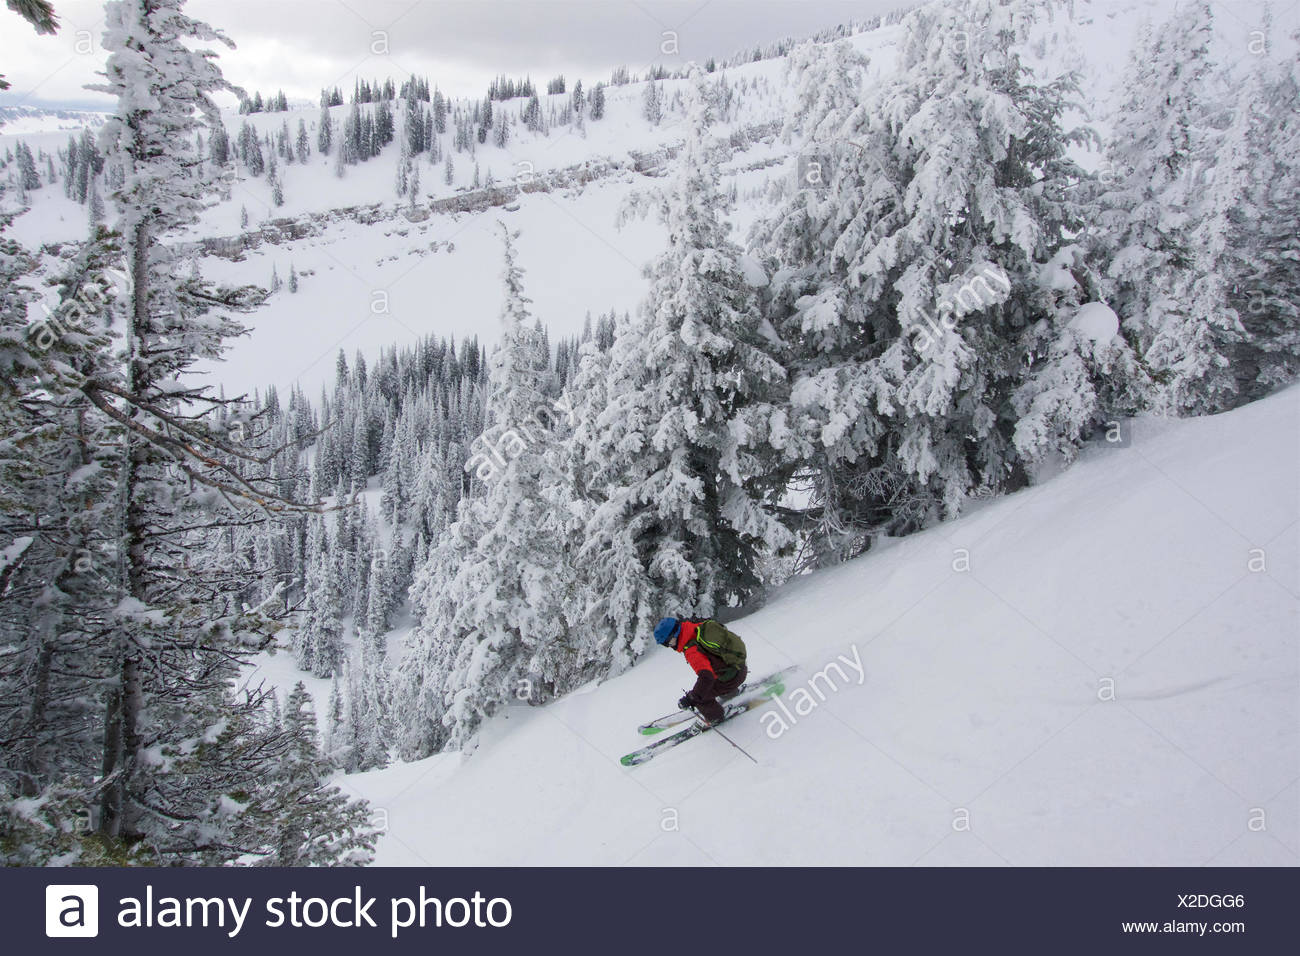 A teen boy downhill skiing with rime covered trees in the mountains on a cloudy day. Stock Photo